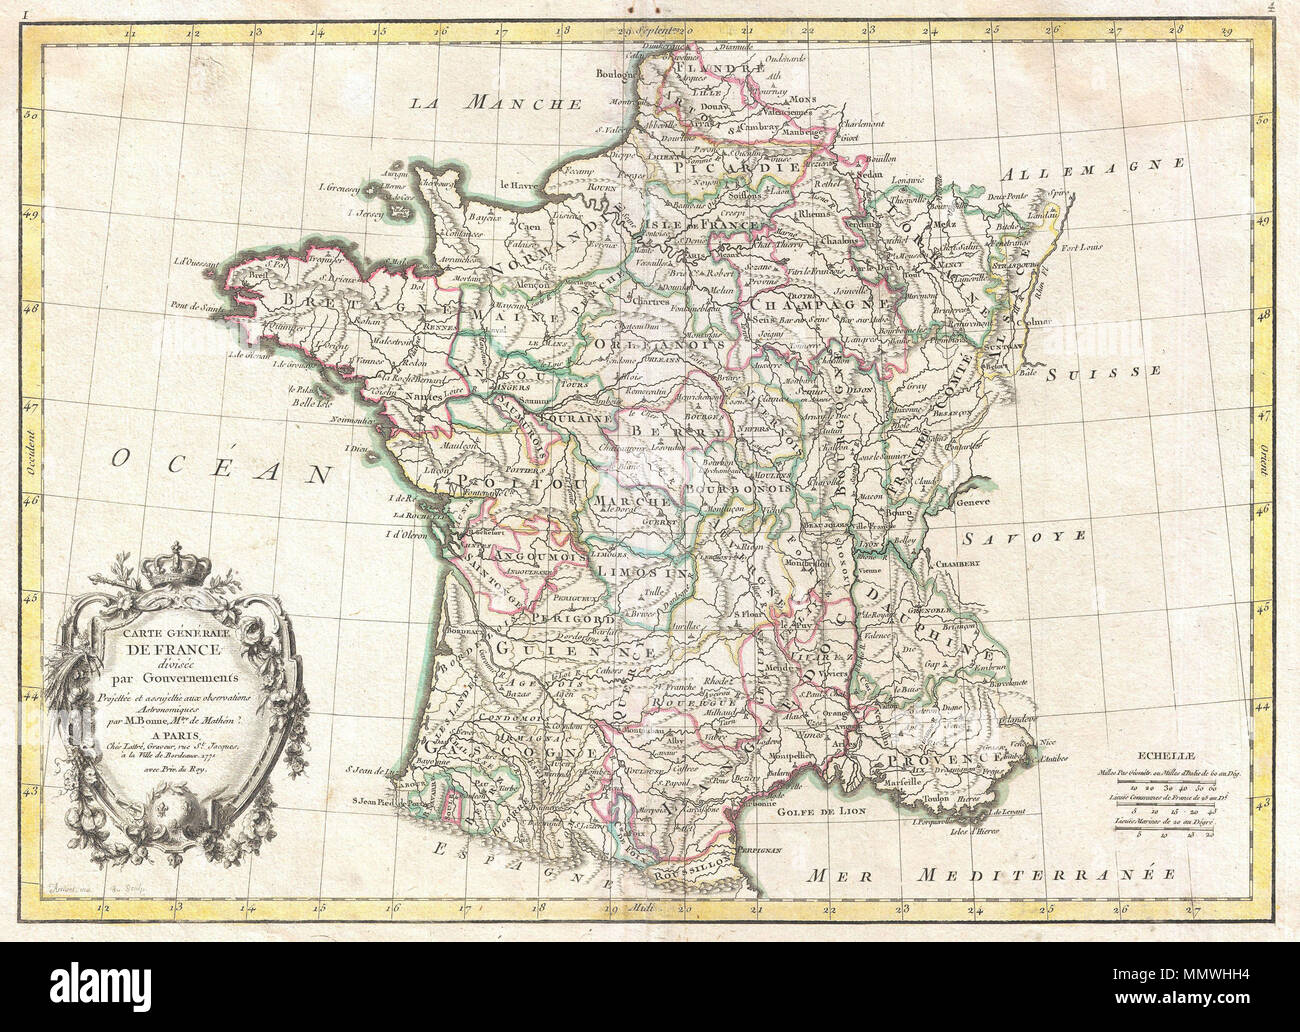 Map Of France With Cities In English.English A Beautiful Example Of Rigobert Bonne S Decorative Map Of